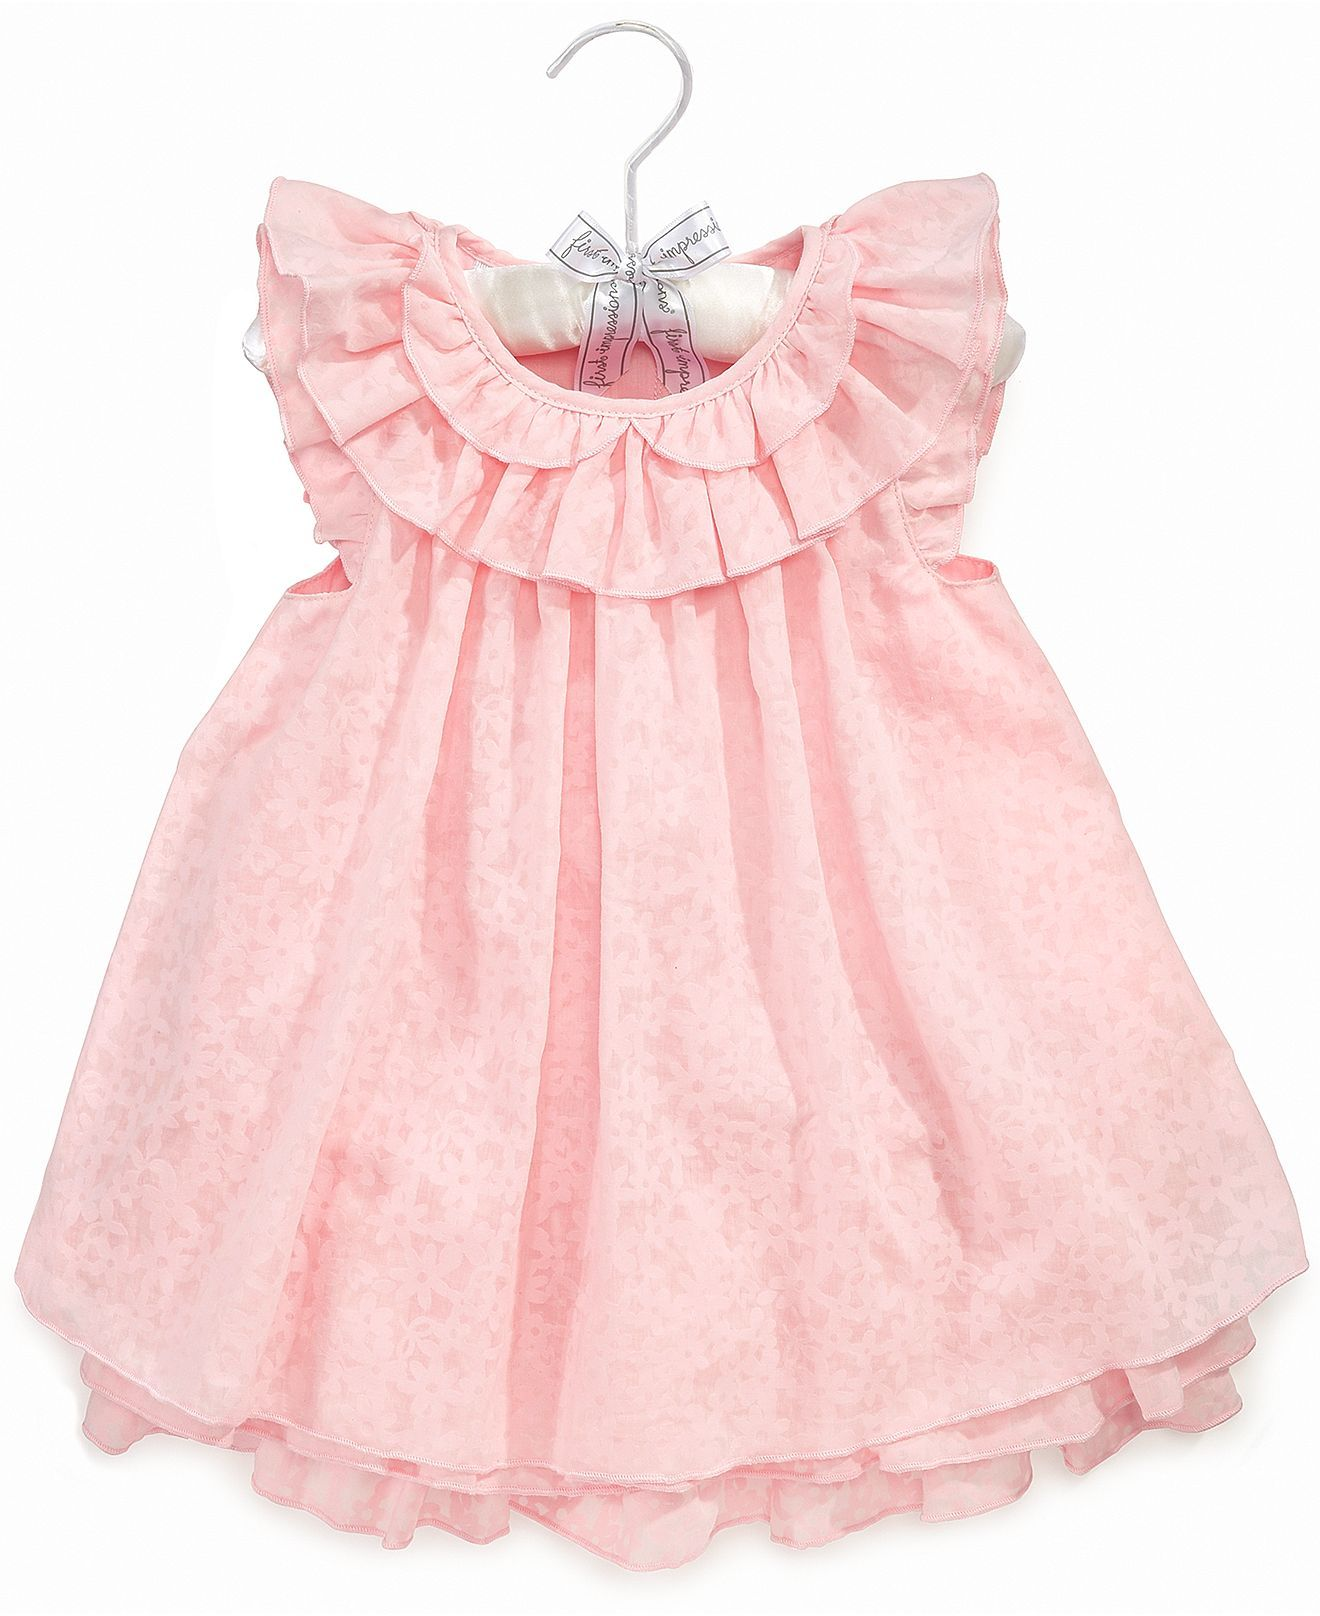 First Impressions Baby Dress Baby Girls Burn Out Dress Kids Baby Girl 0 24 Months Macy S Kids Dress Girl Outfits Baby Girl Dress